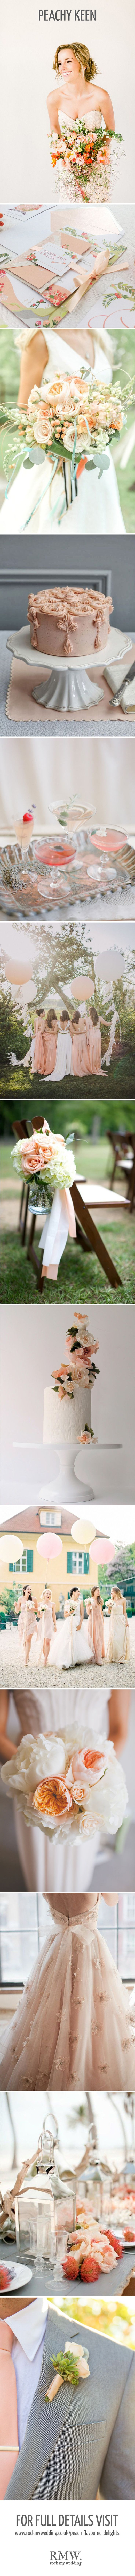 Love these peach wedding details | How To Create A Peach And Coral Colour Themed Wedding With Your Centrepieces, In Your Bouquet And With Your Fashion Choices via @rockmywedding